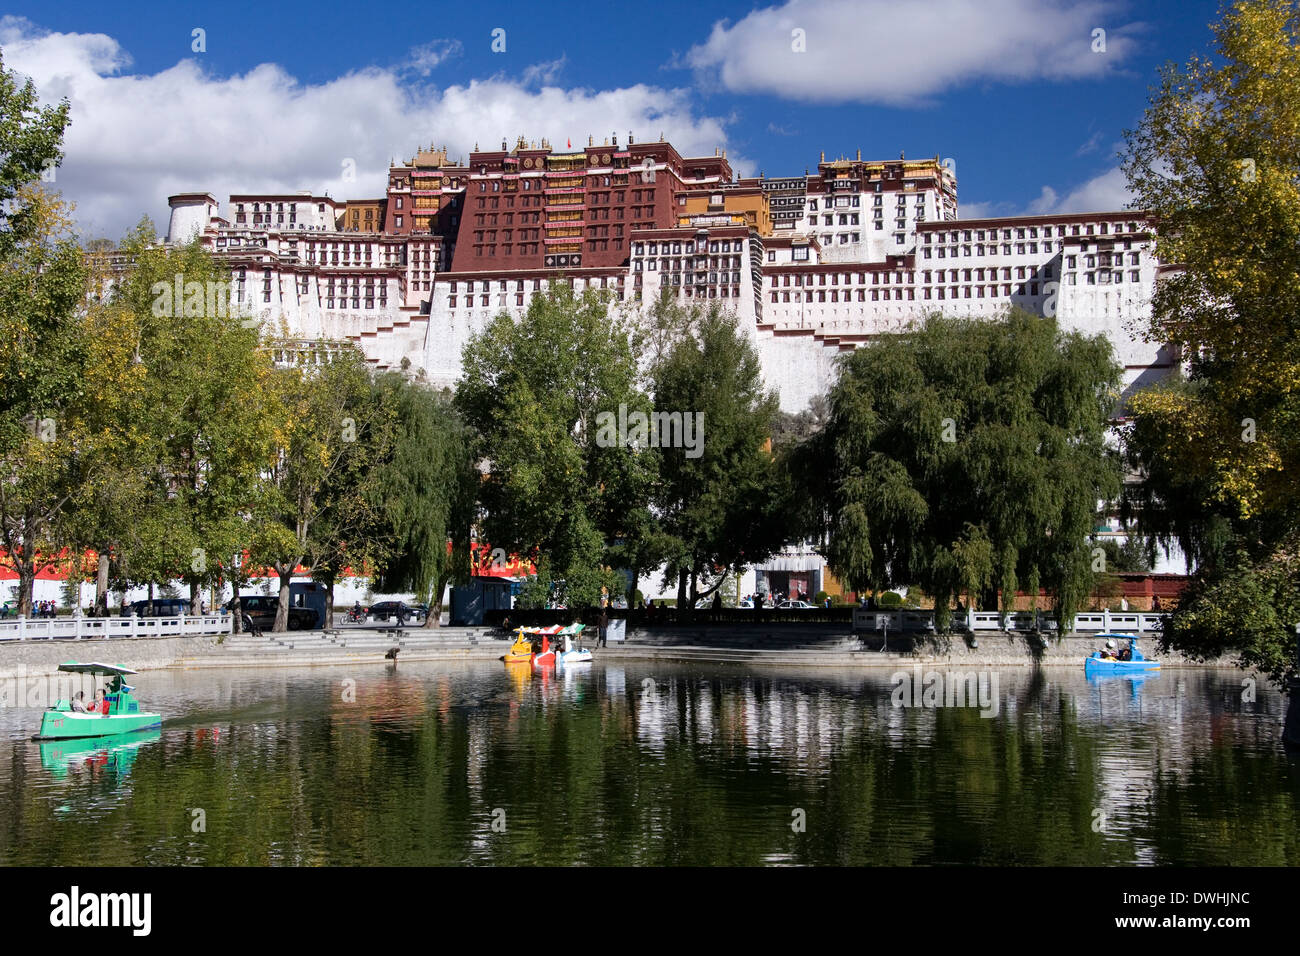 Potala Palace in the city of Lhasa in Tibet (Tibet Autonomous Region of China). - Stock Image